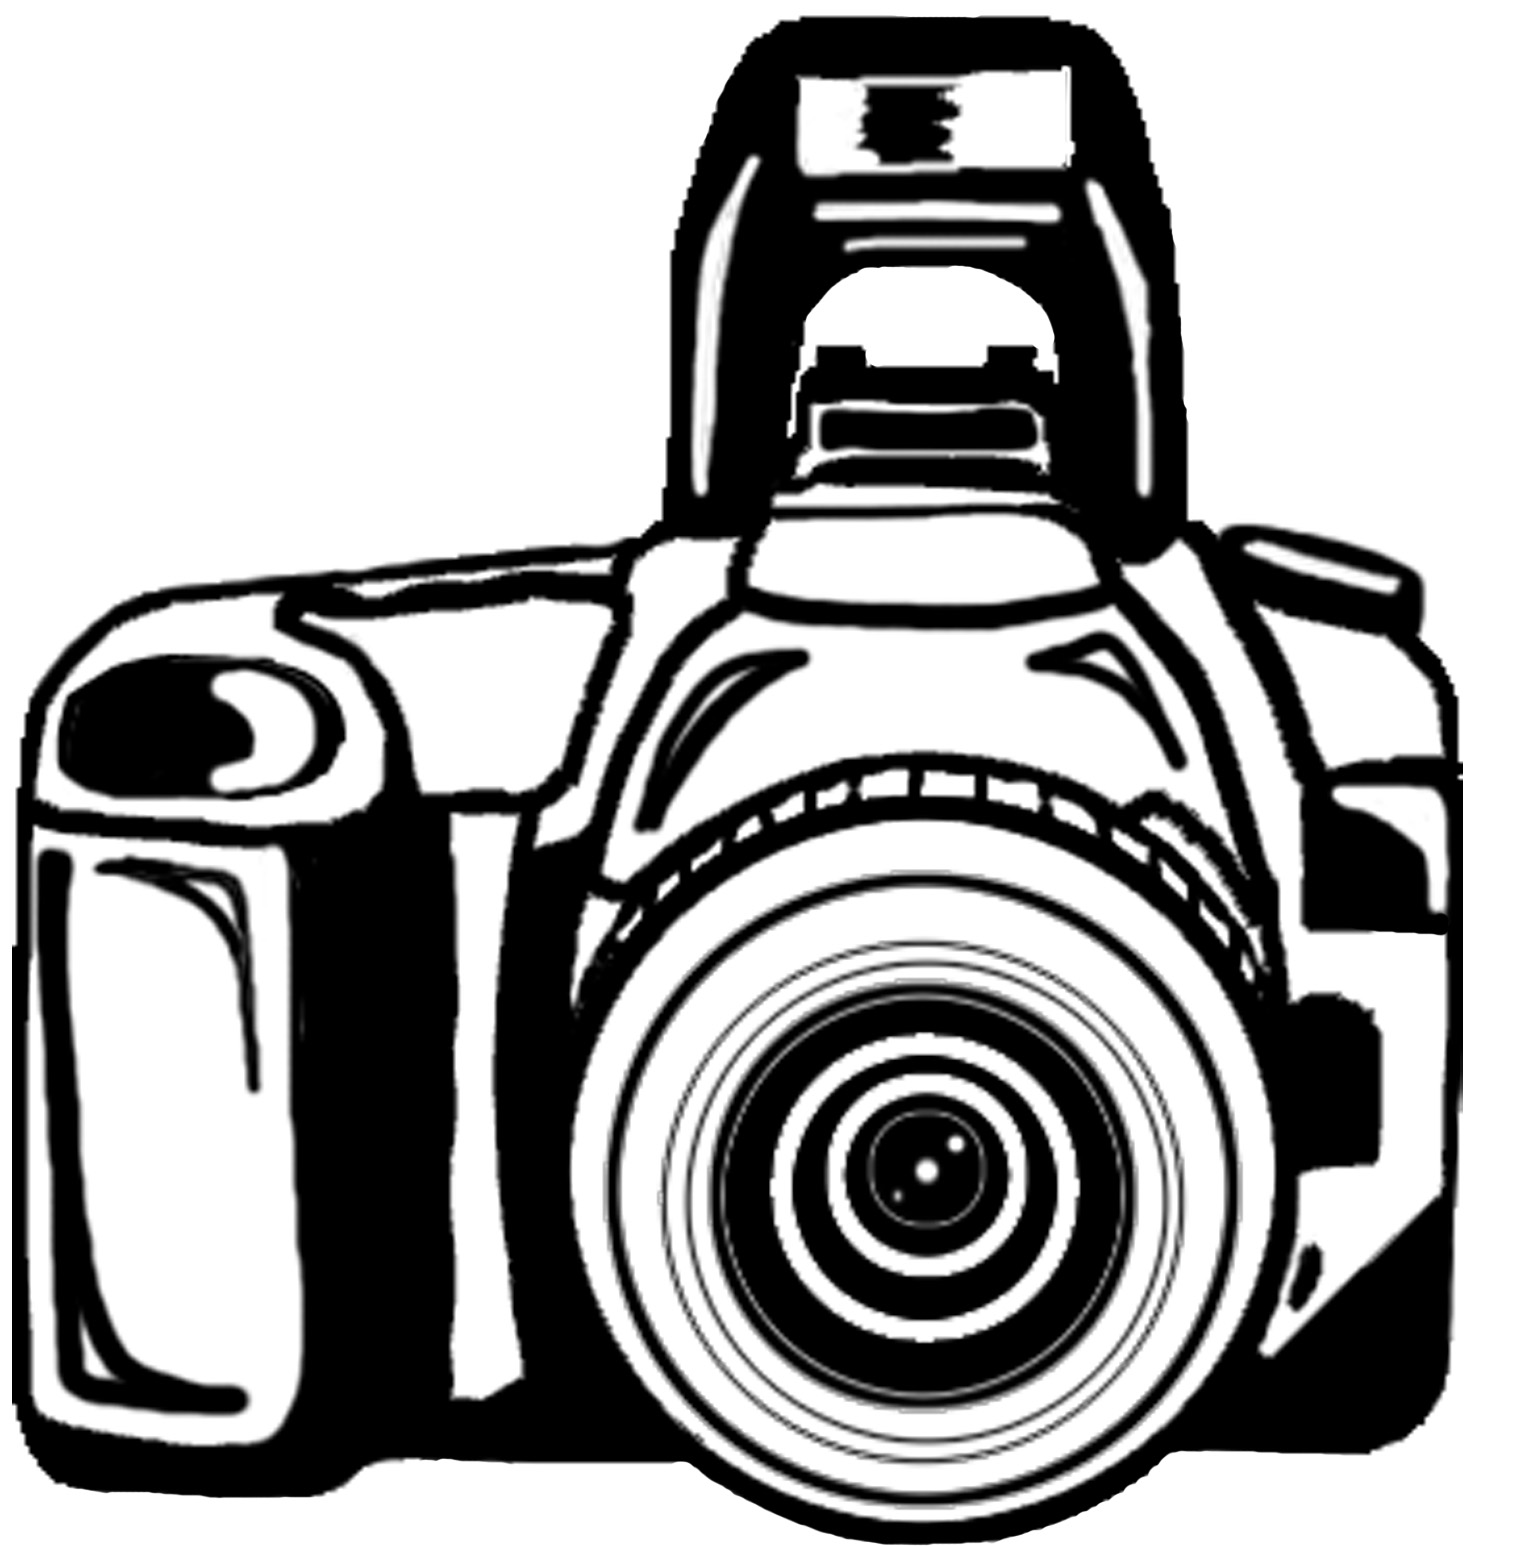 camera clip art app - photo #24